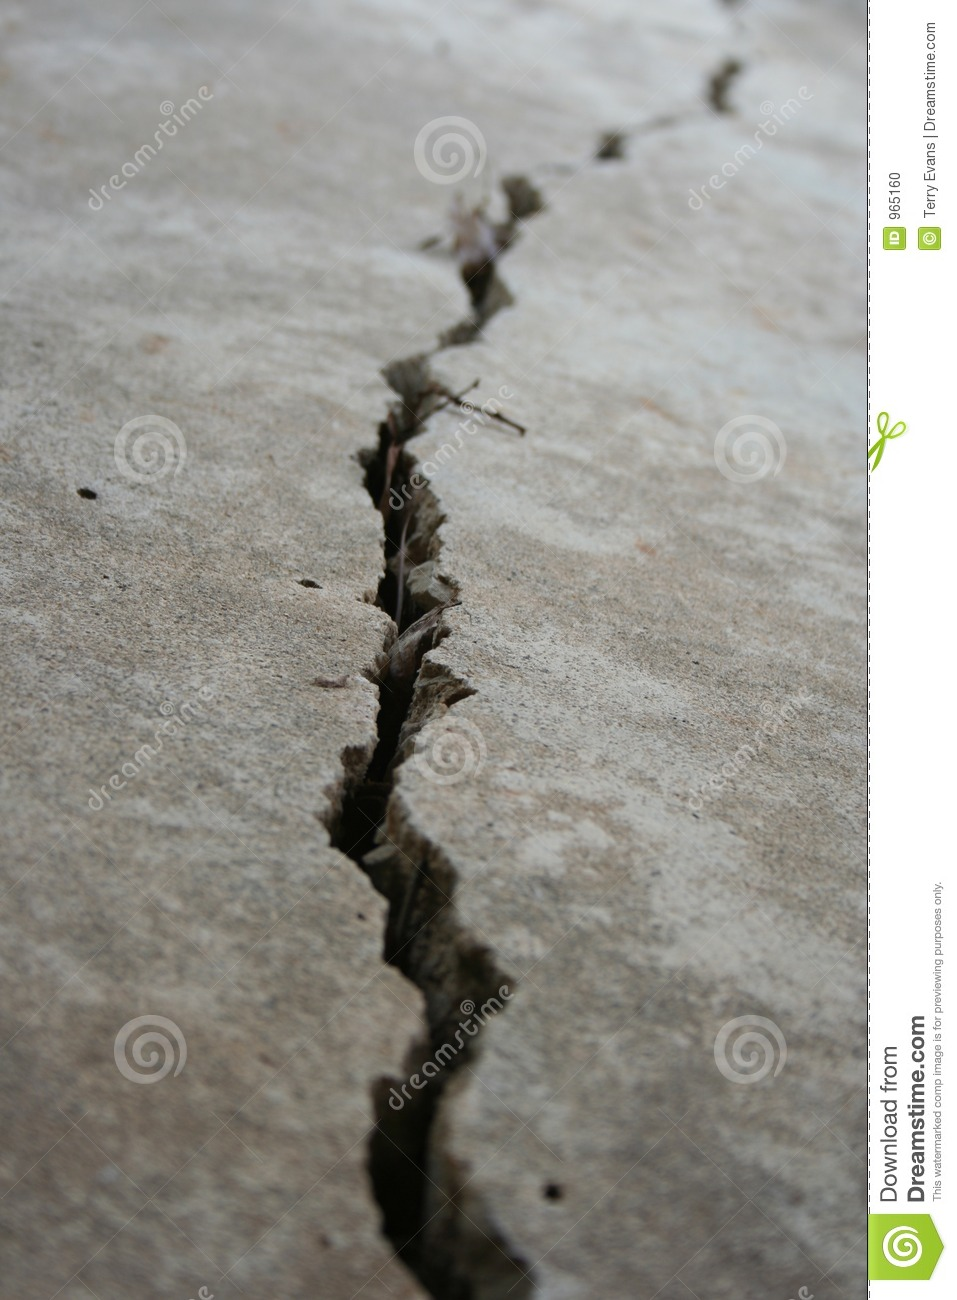 Crack In Pavement Stock Photo Image Of Metaphor